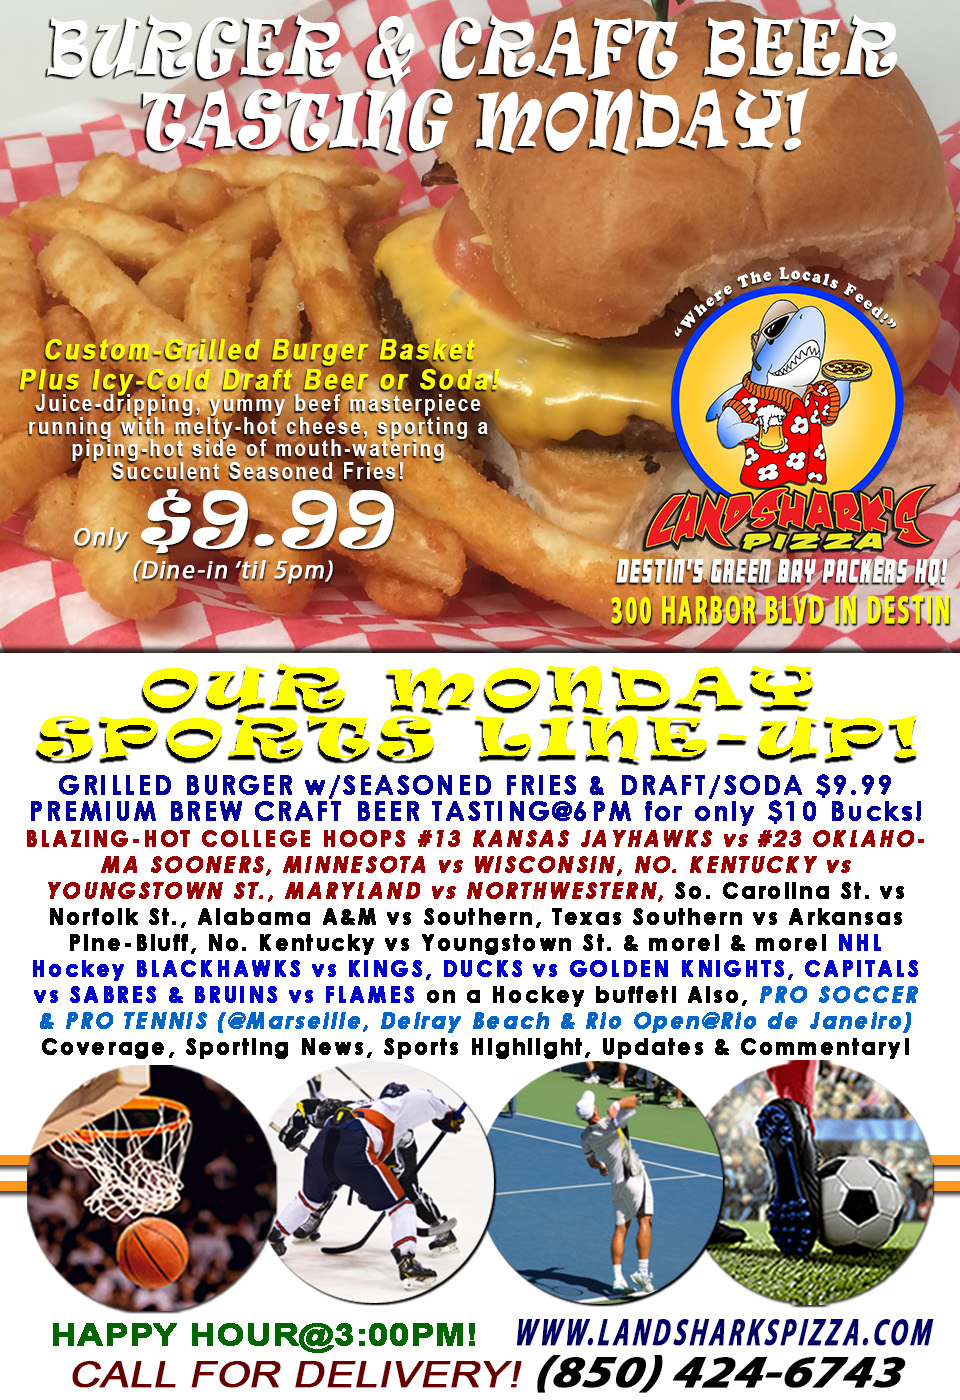 Hot & Melty Grilled Burger & Brew Monday JAYHAWKS vs SOONERS College Hoops & Craft BEER TASTING@6PM!NHL, NBA & more!